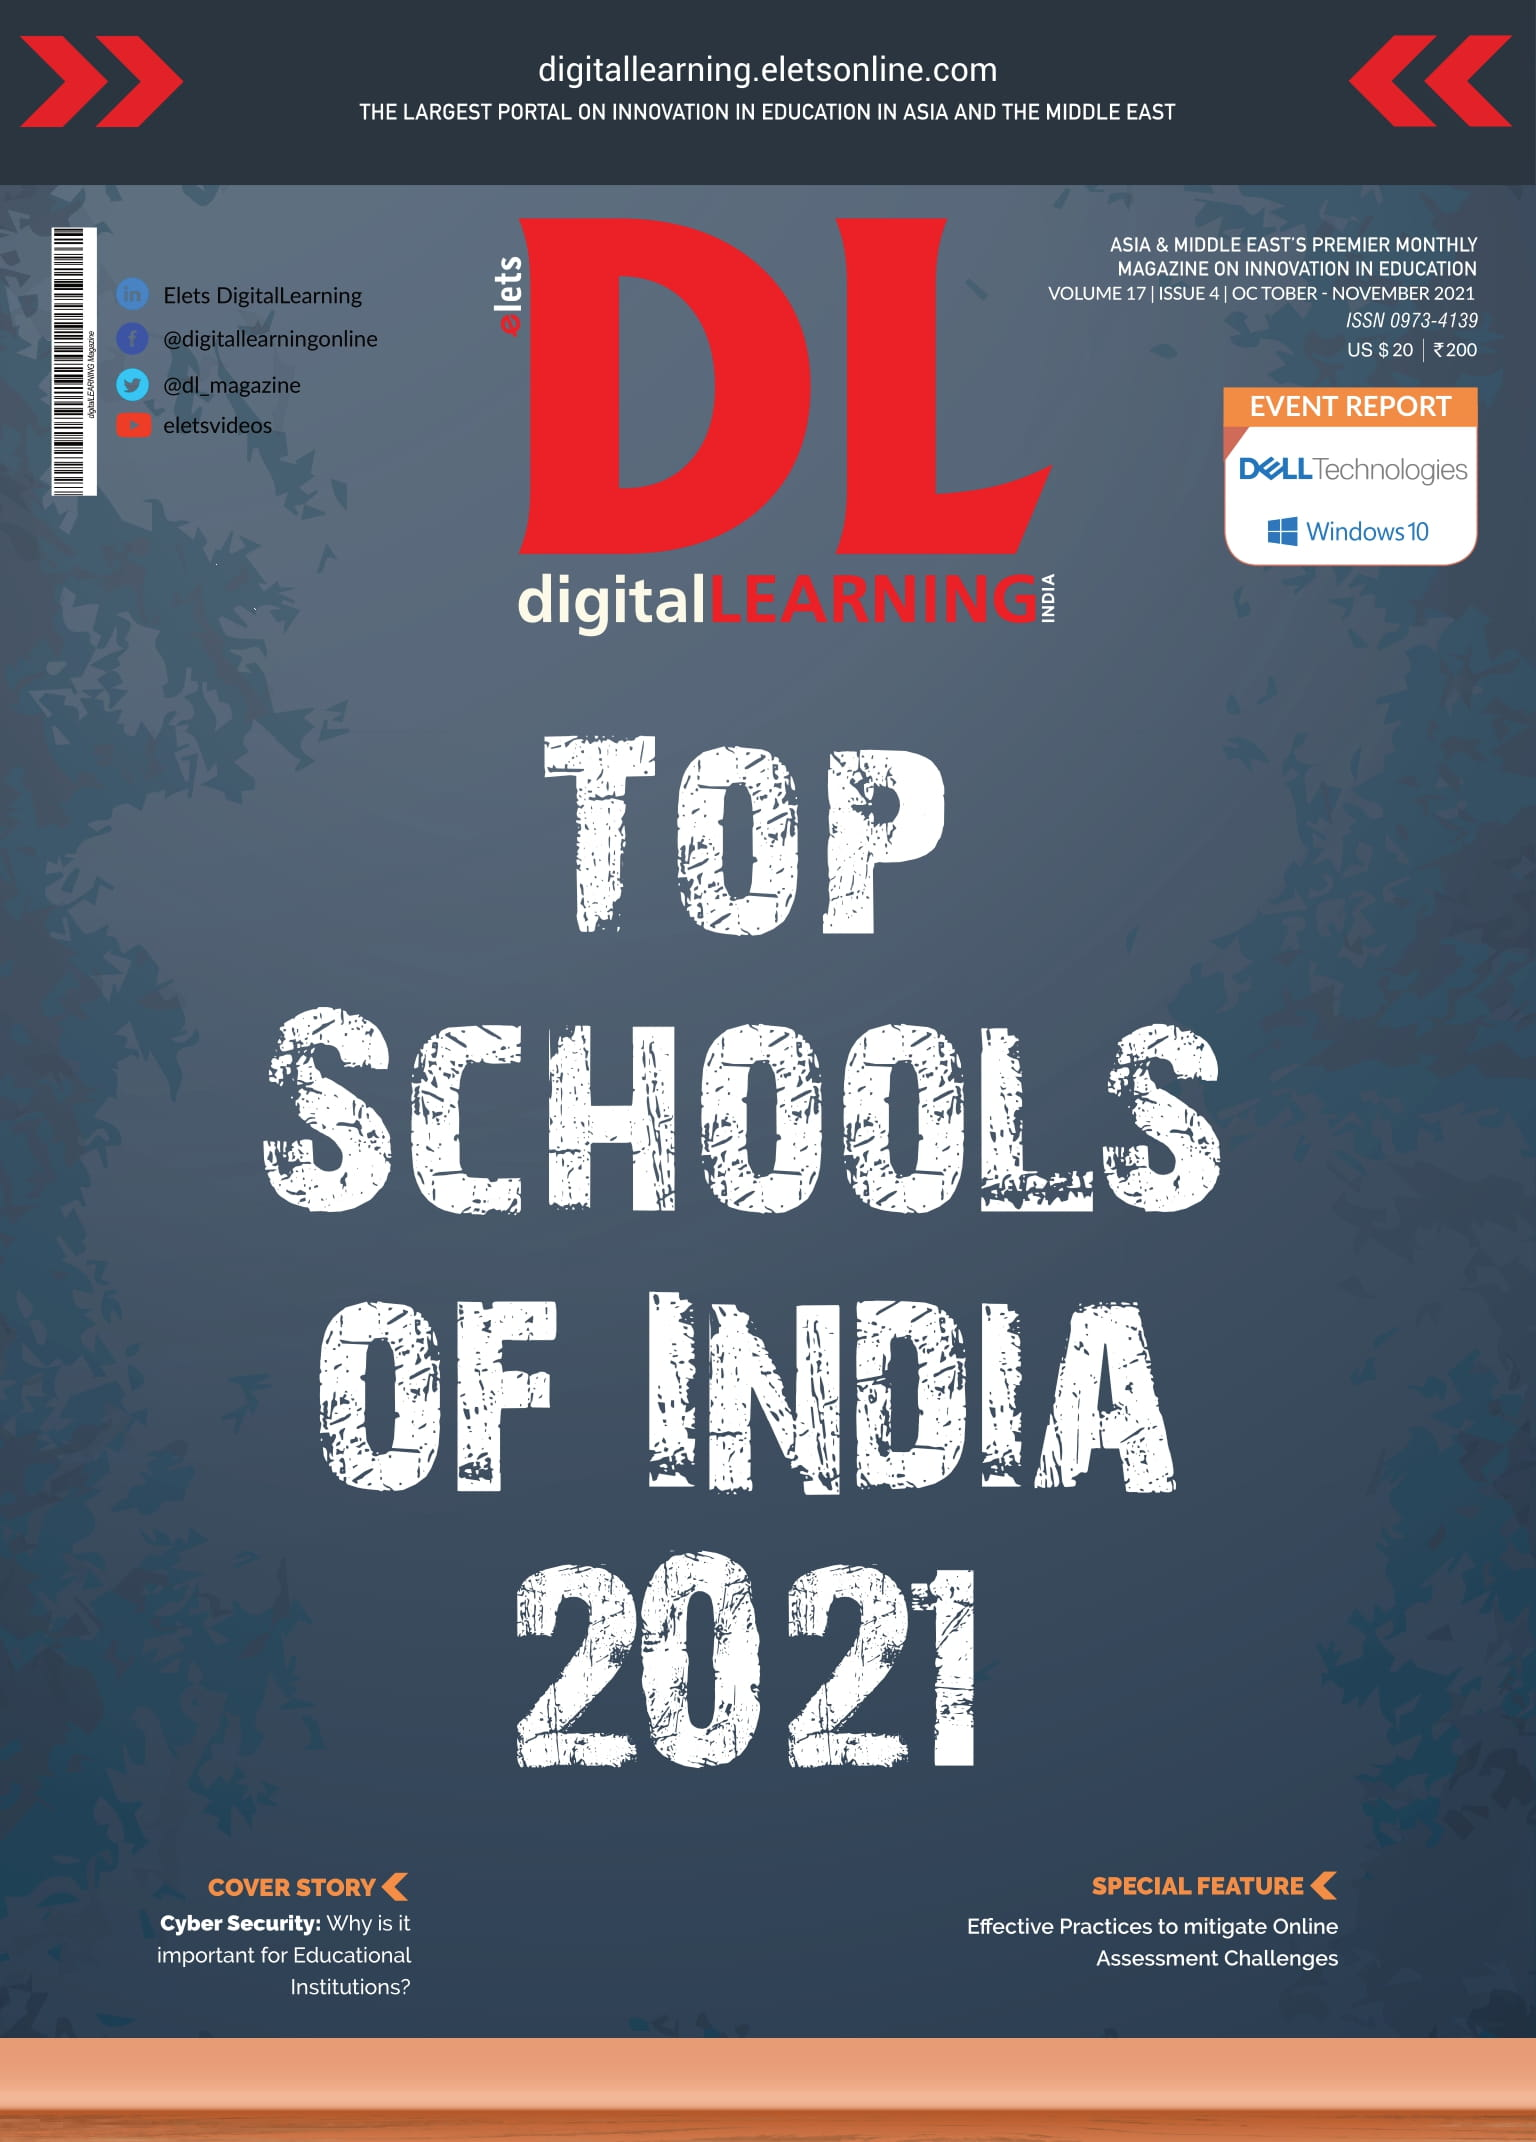 DigitalLearning Magazine